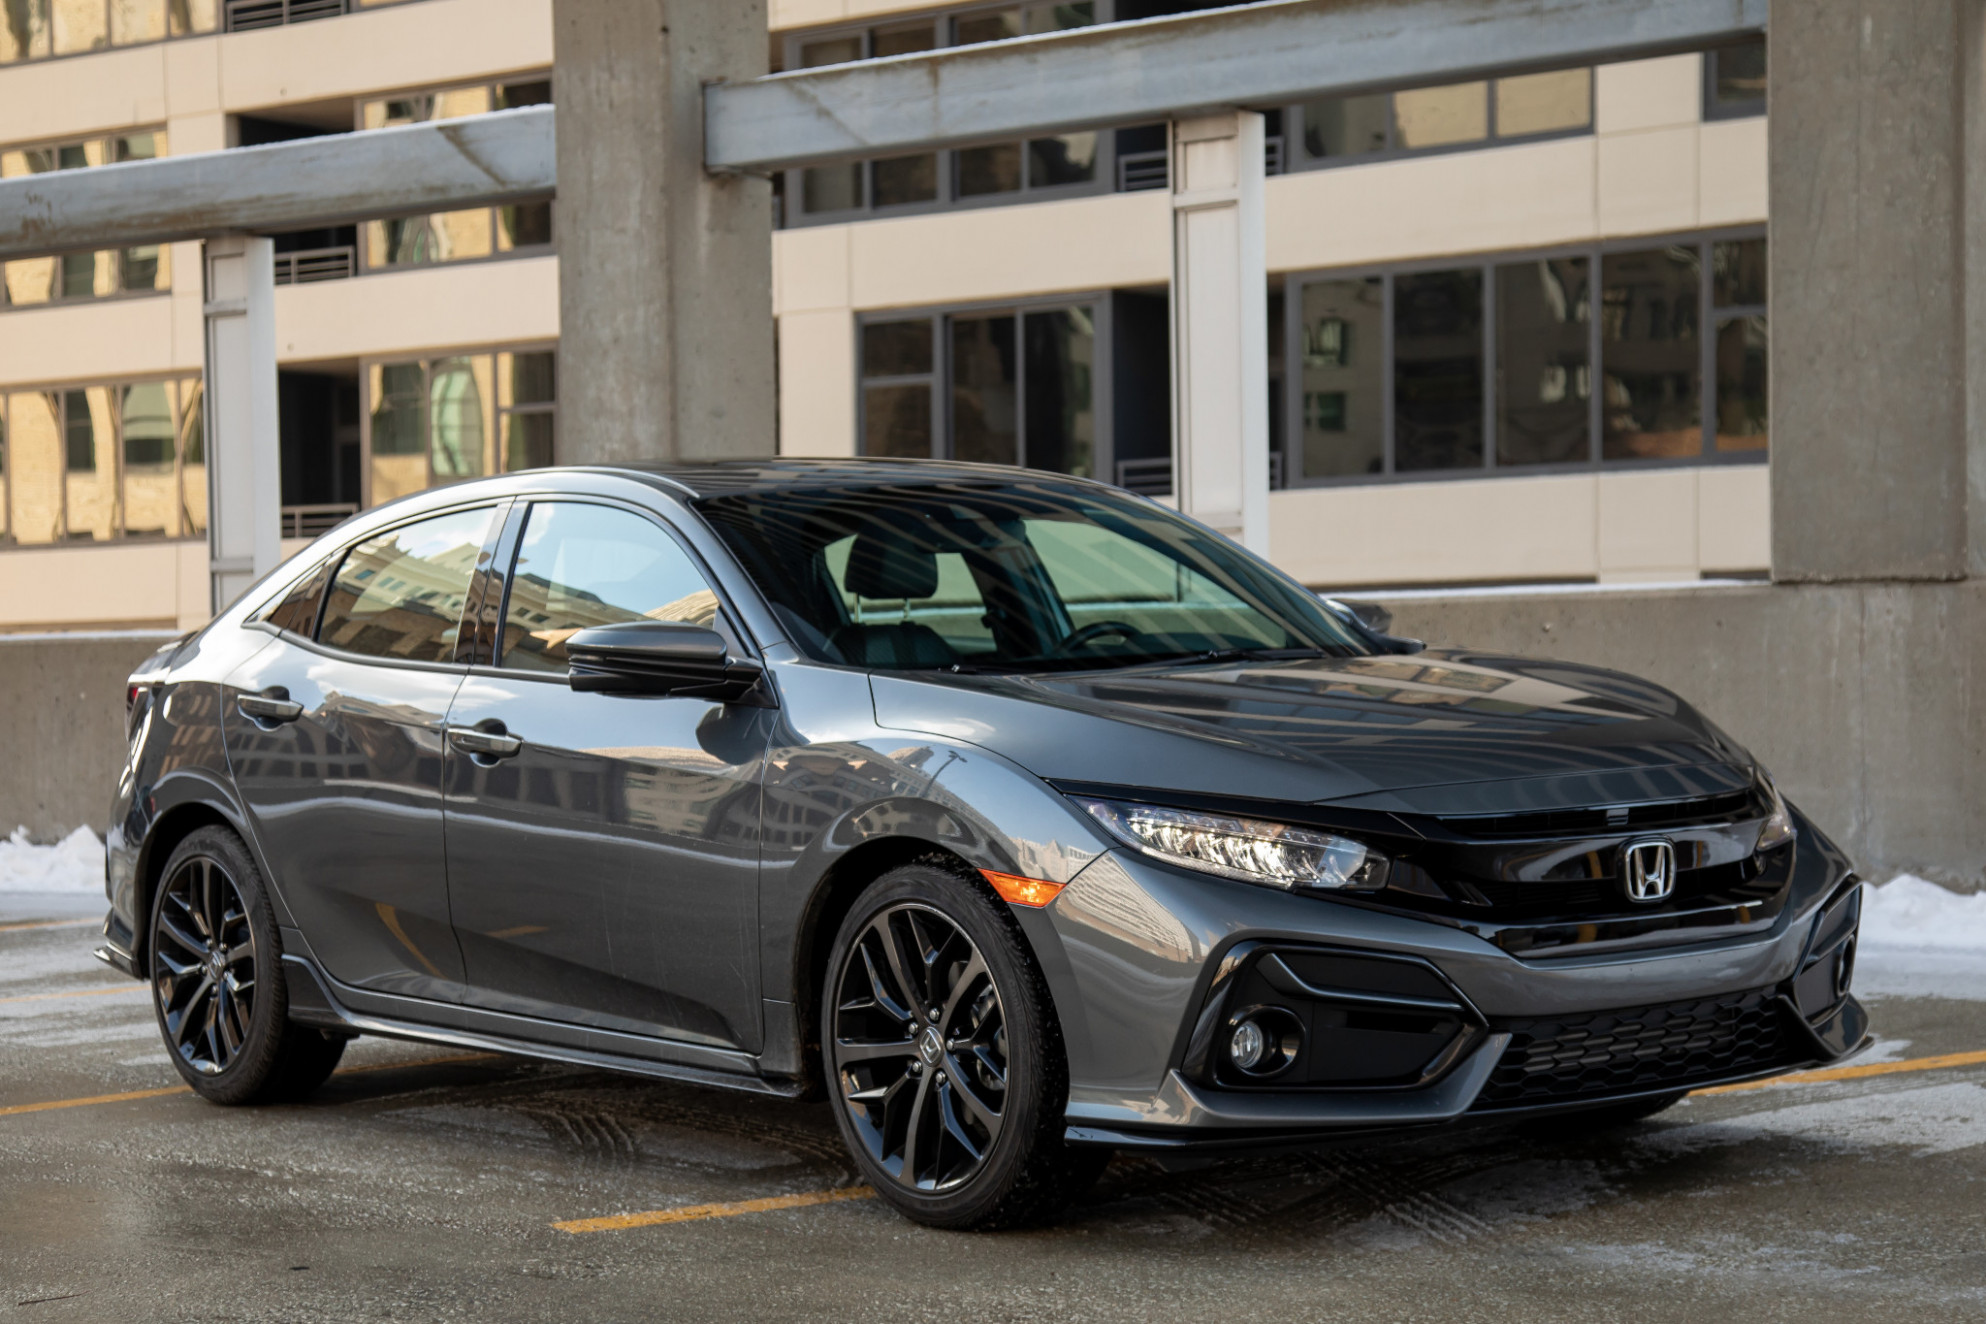 2020 Honda Civic Specs and Review